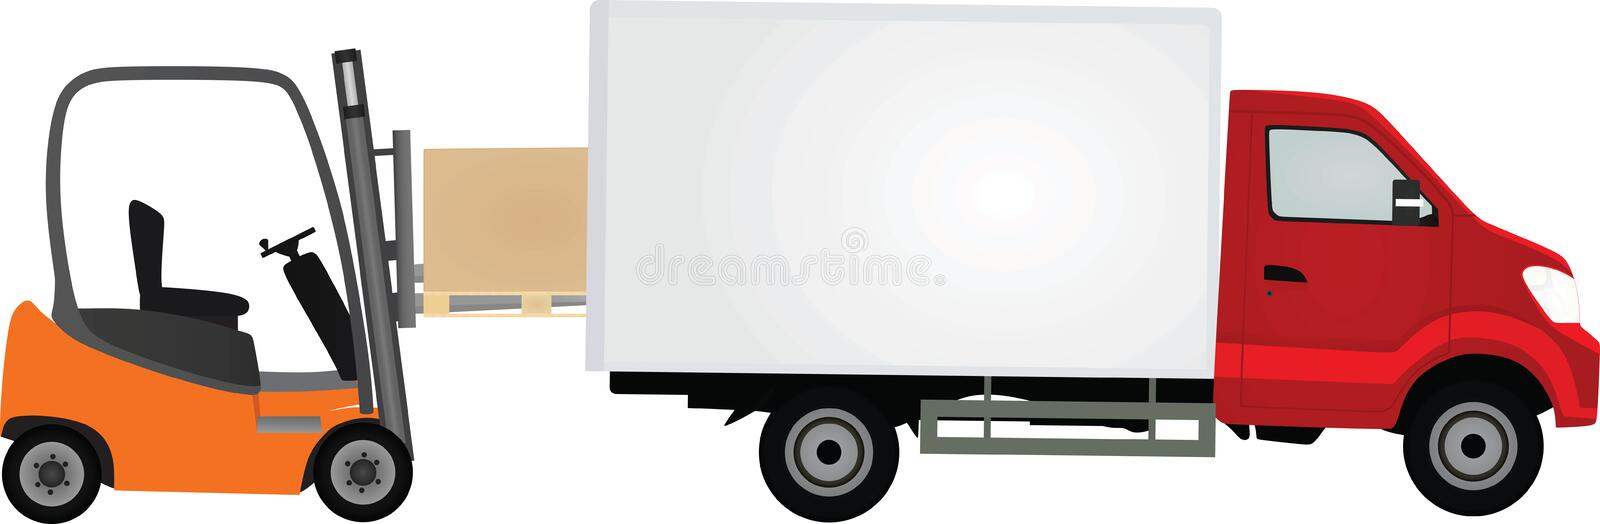 Forklift load container to truck vector illustration